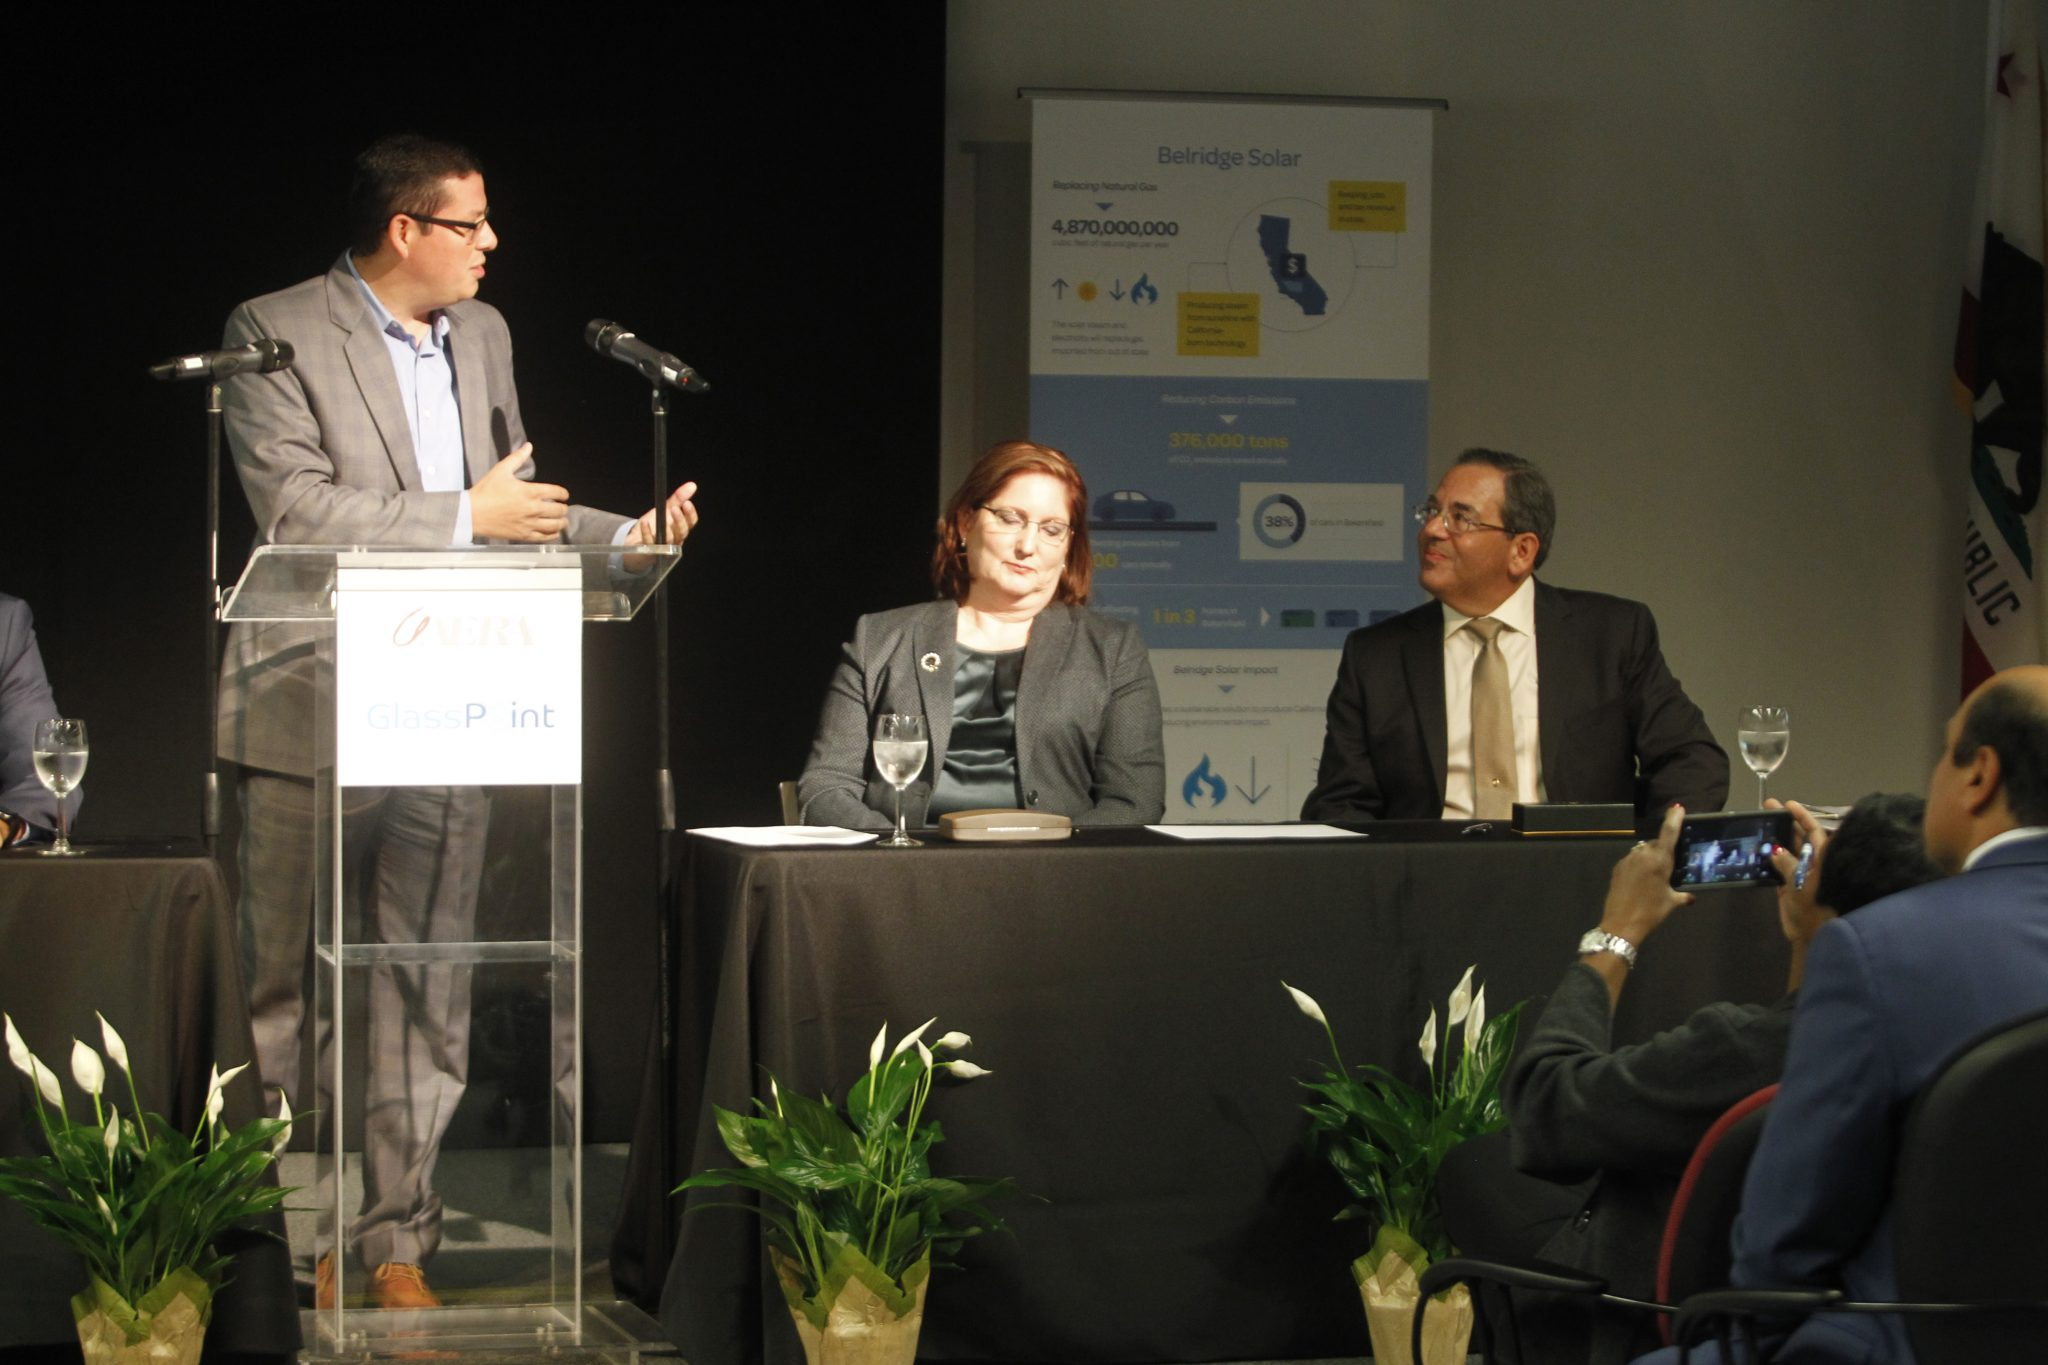 Assemblyman Rudy Salas, who represents the 32nd Assembly District, speaks at the announcement of the Belridge Solar project. From right, Aera President and CEO Christina Sistrunk and acting GlassPoint CEO Ben Bierman.